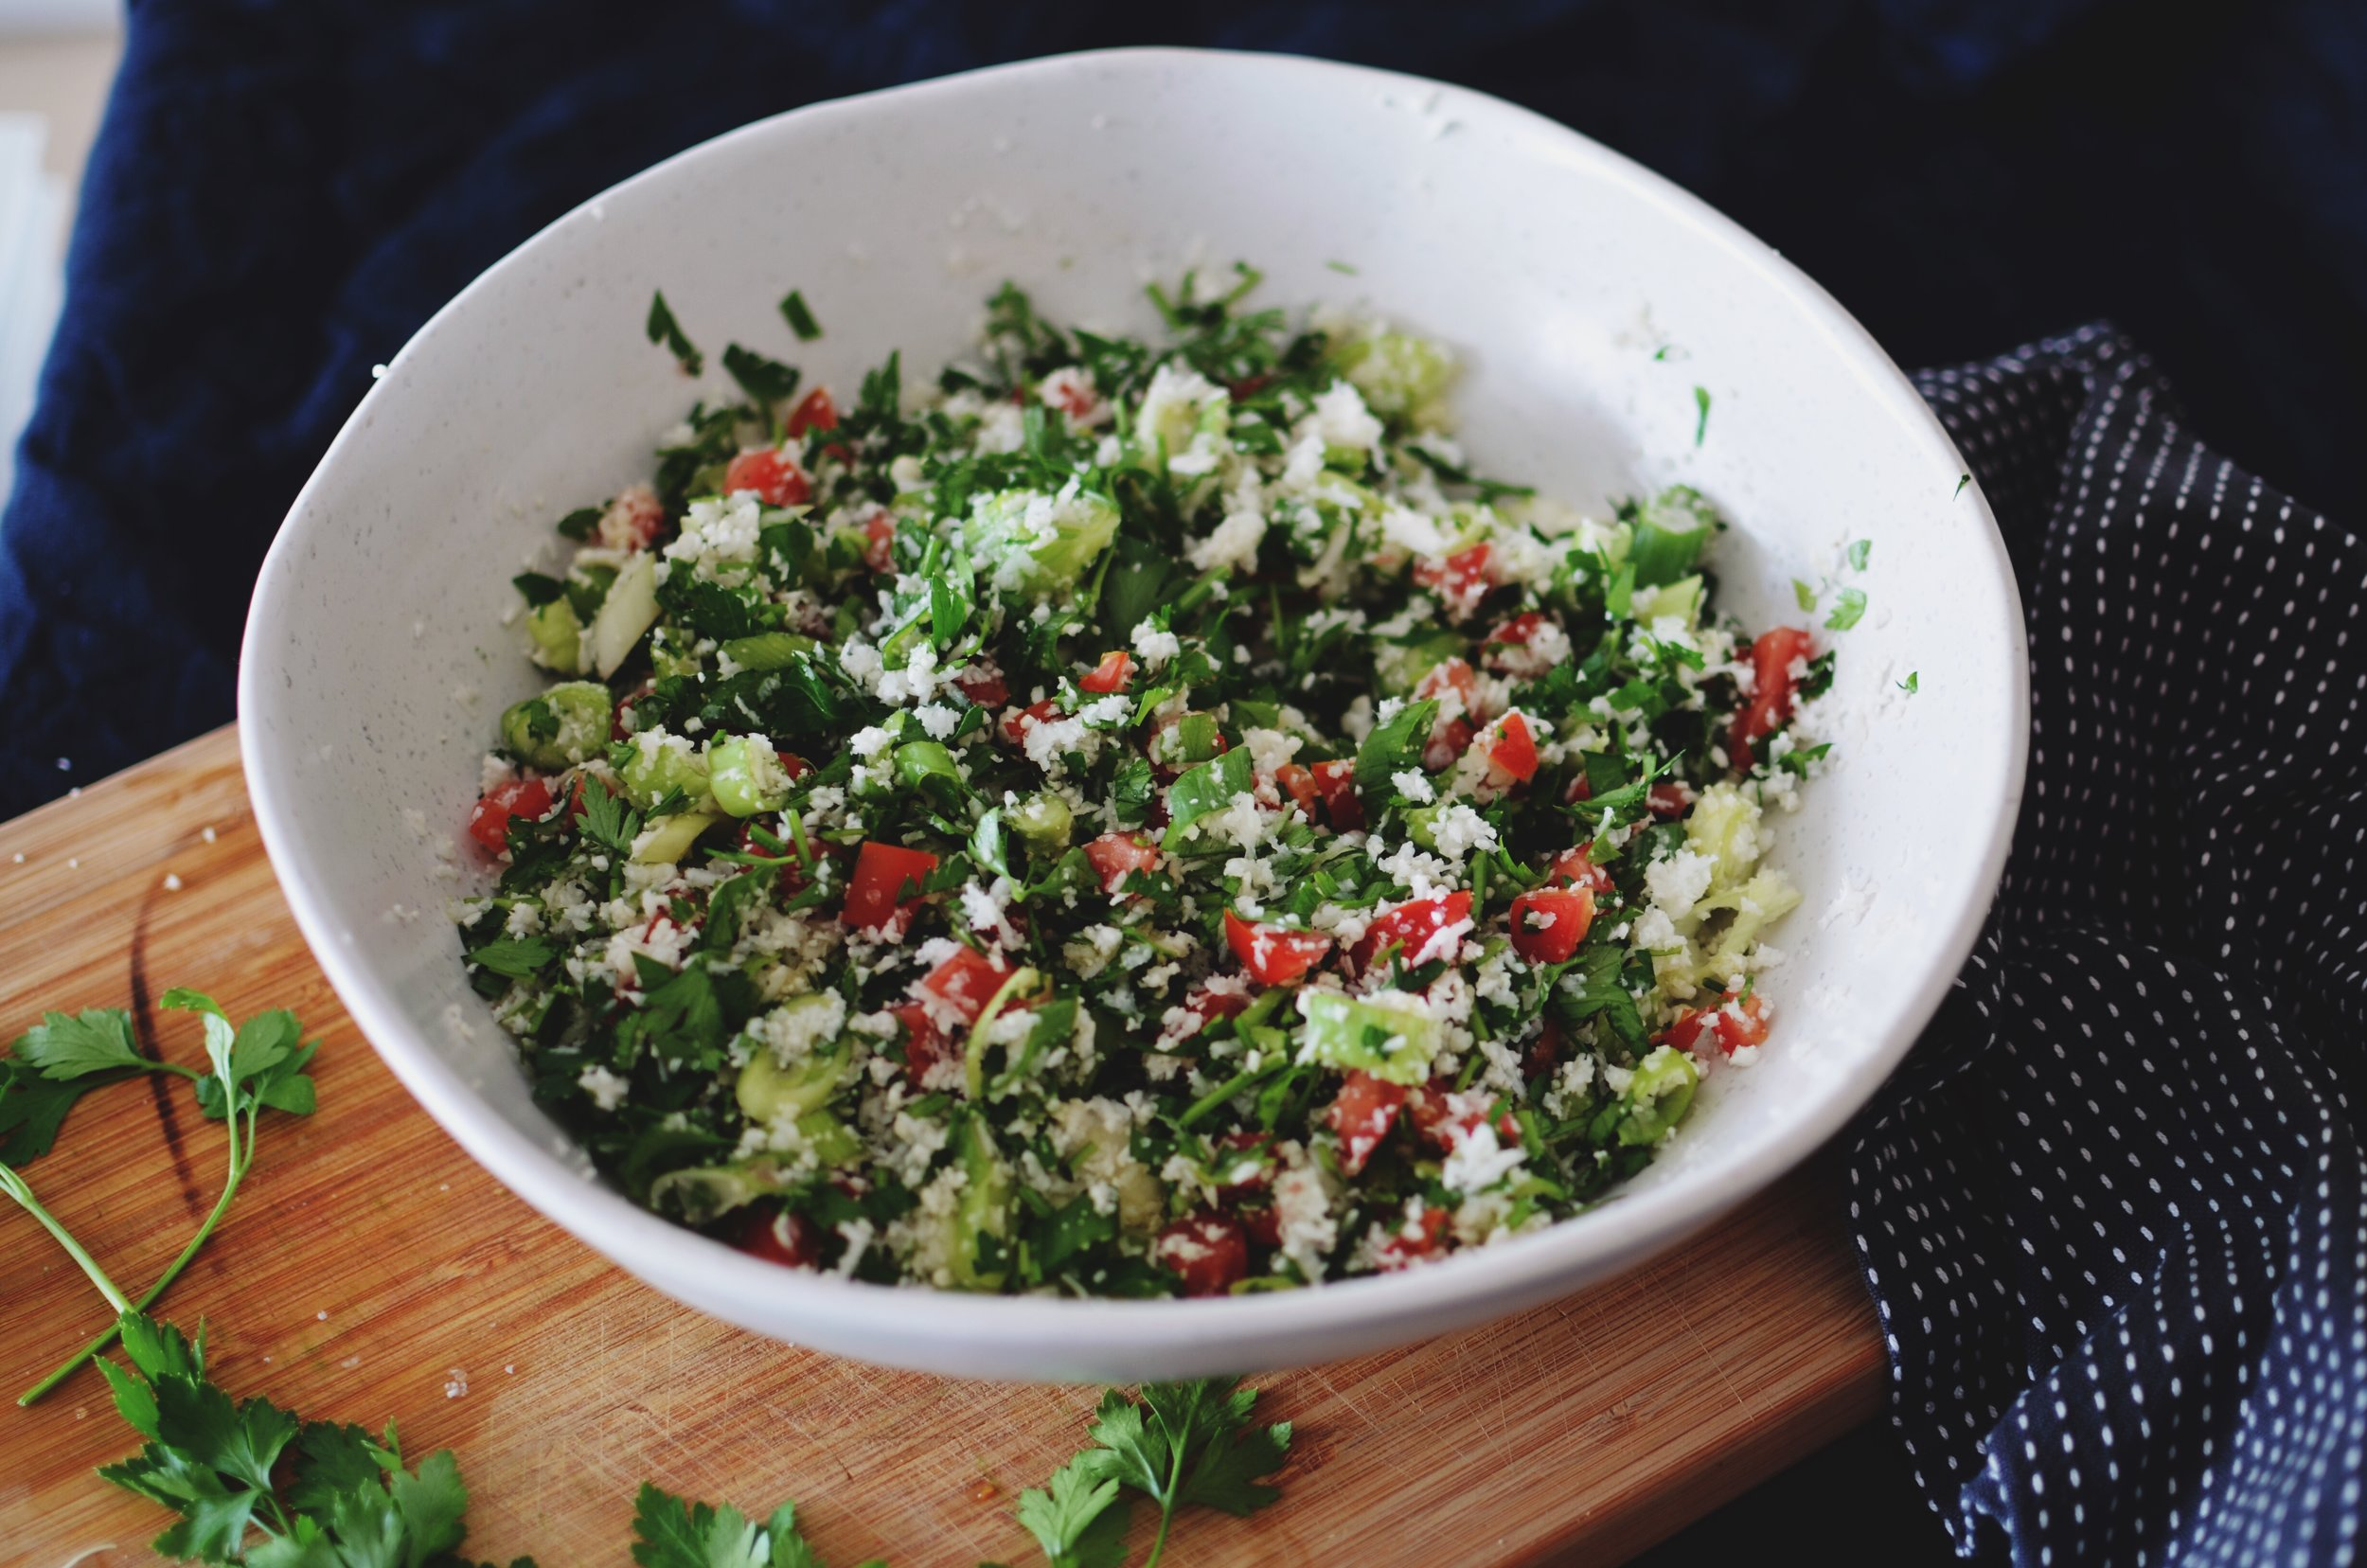 With a fresh side of TABBOULEH - Tabbouleh is a fresh vegetarian salad using parsley as the base ingredient. The first tabbouleh recipes originated in Lebanon and Syria.